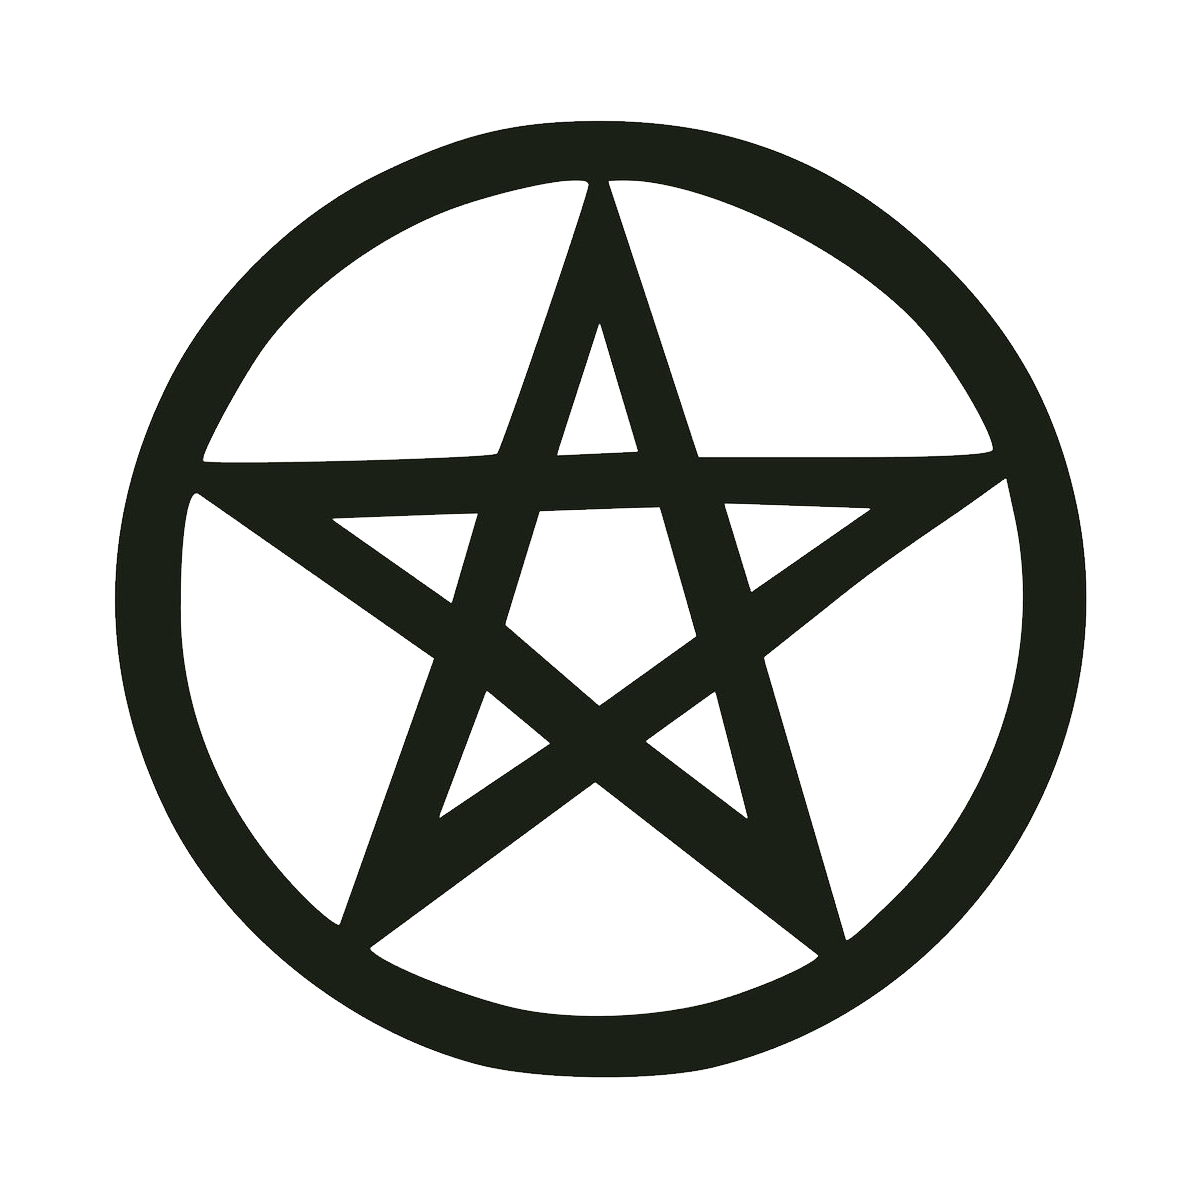 Pentacle transparent. Png image with background